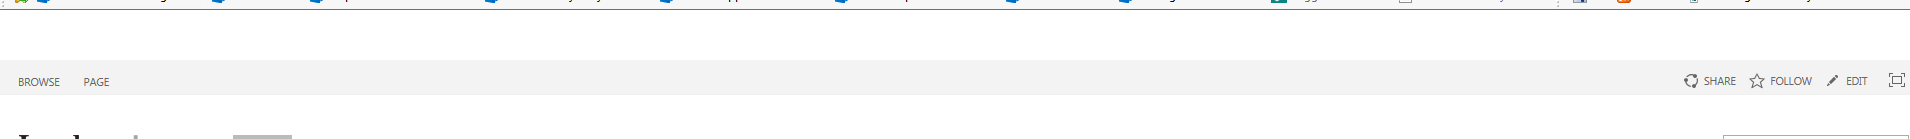 Office 365 top navigation bar disappears in SharePoint